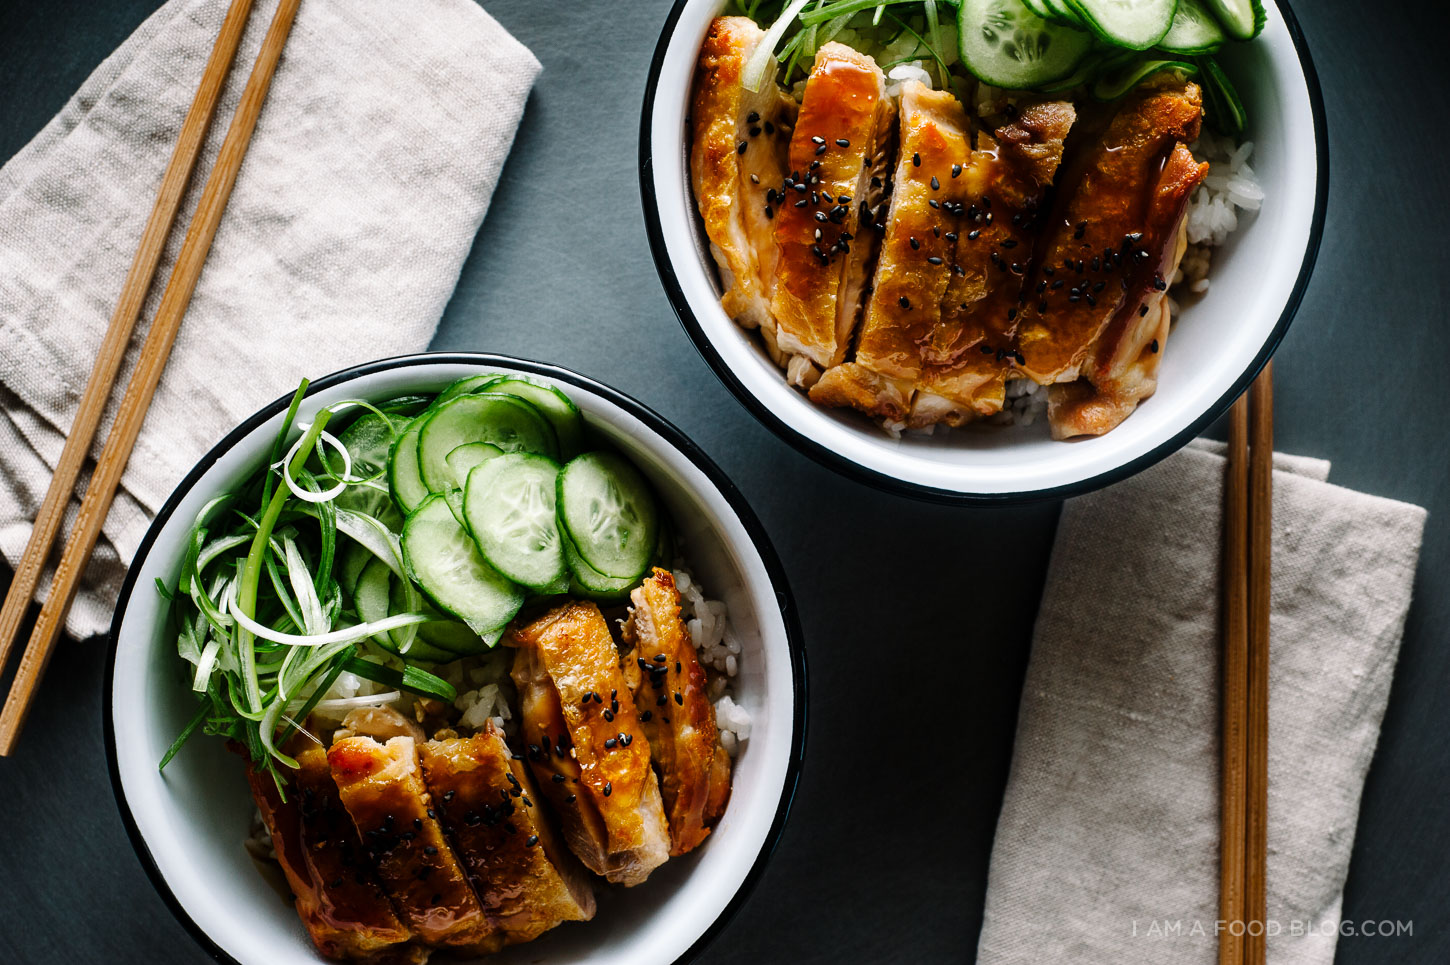 teriyaki chicken recipe - www.iamafoodblog.com